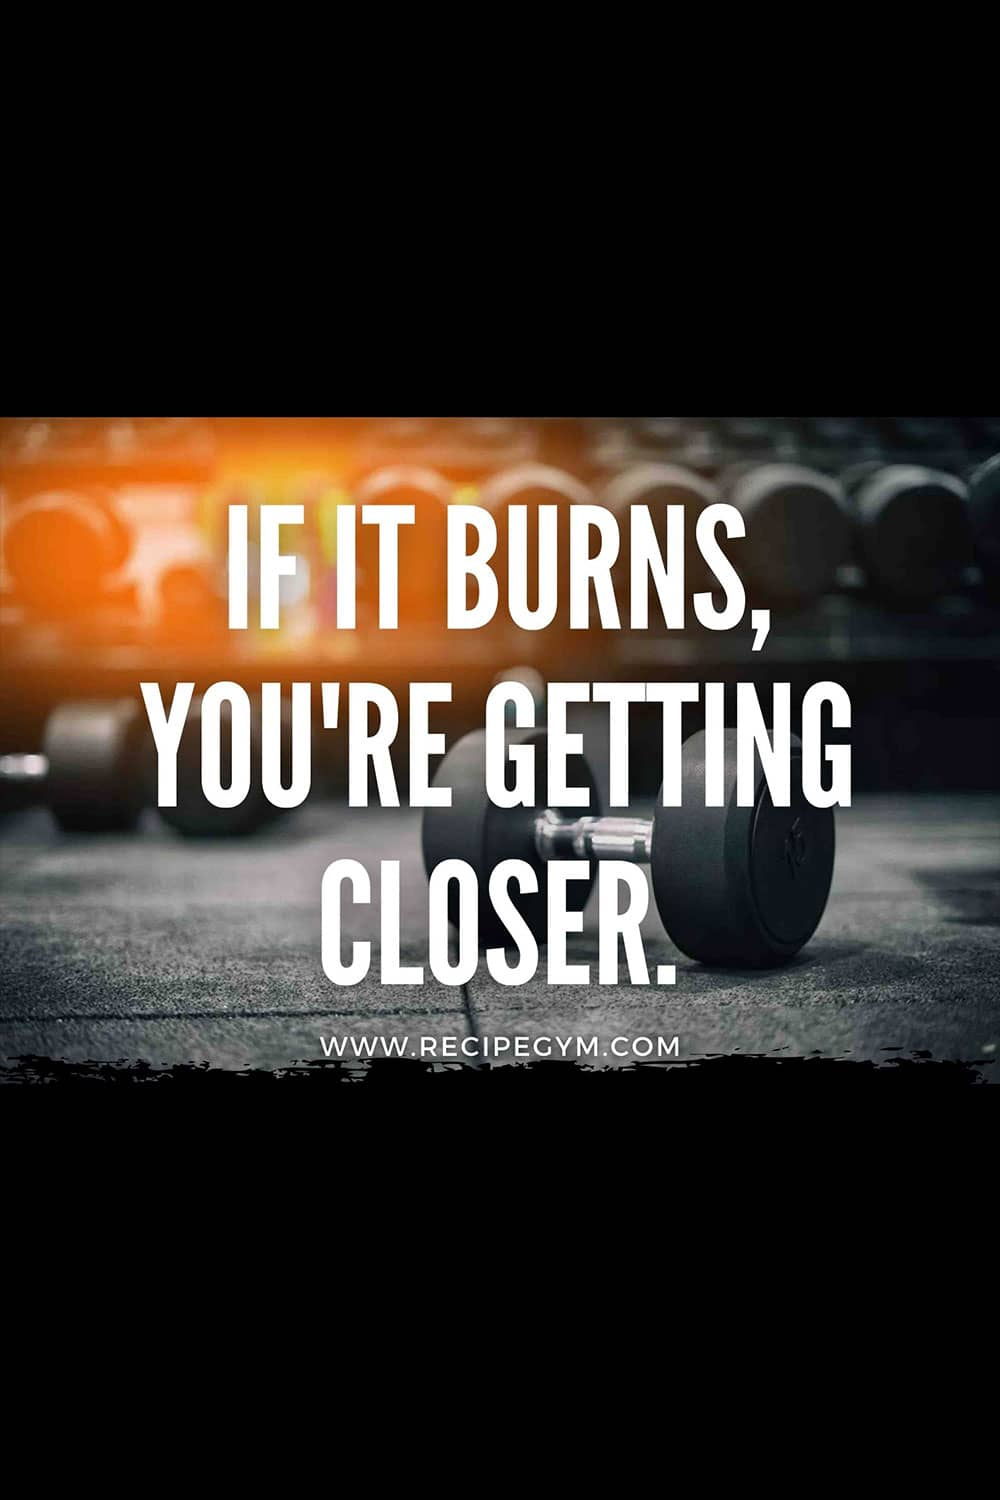 40 Best Gym Quotes That Will Motivate You 7